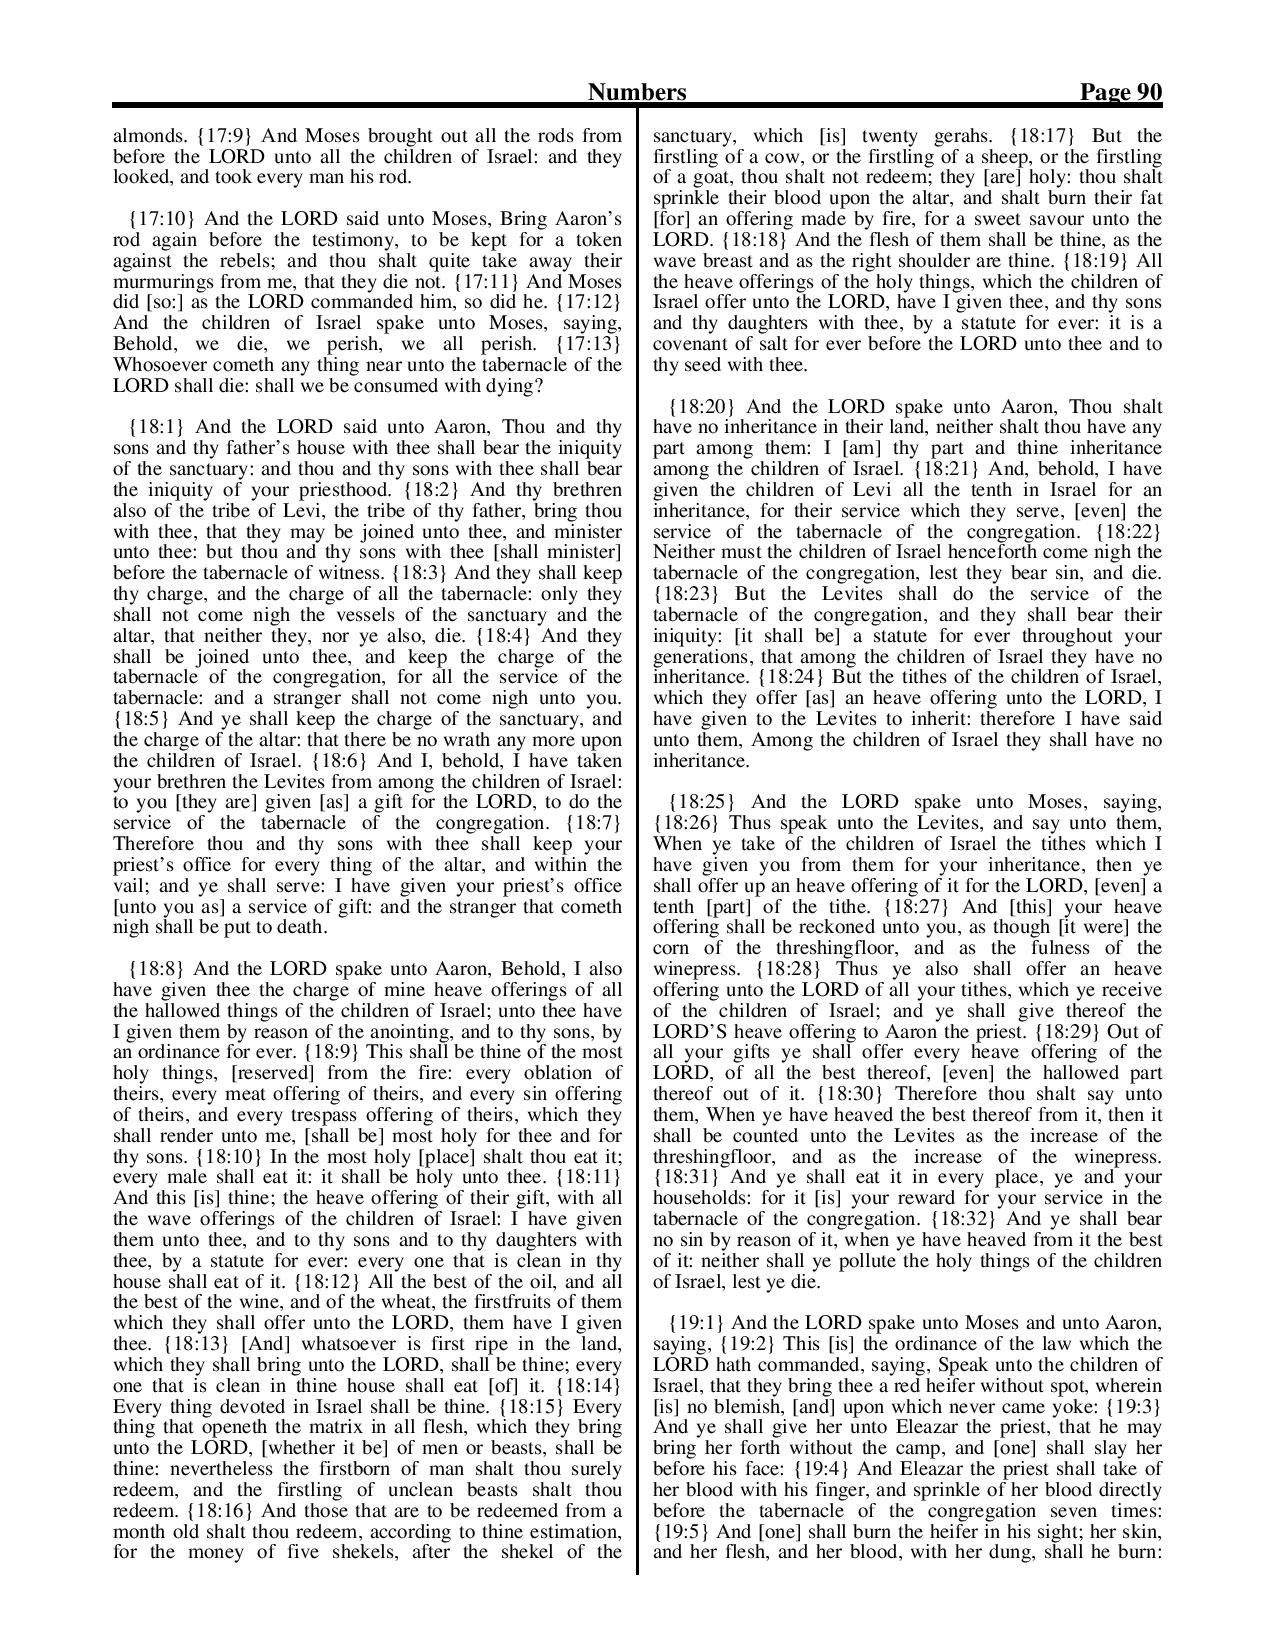 King-James-Bible-KJV-Bible-PDF-page-111